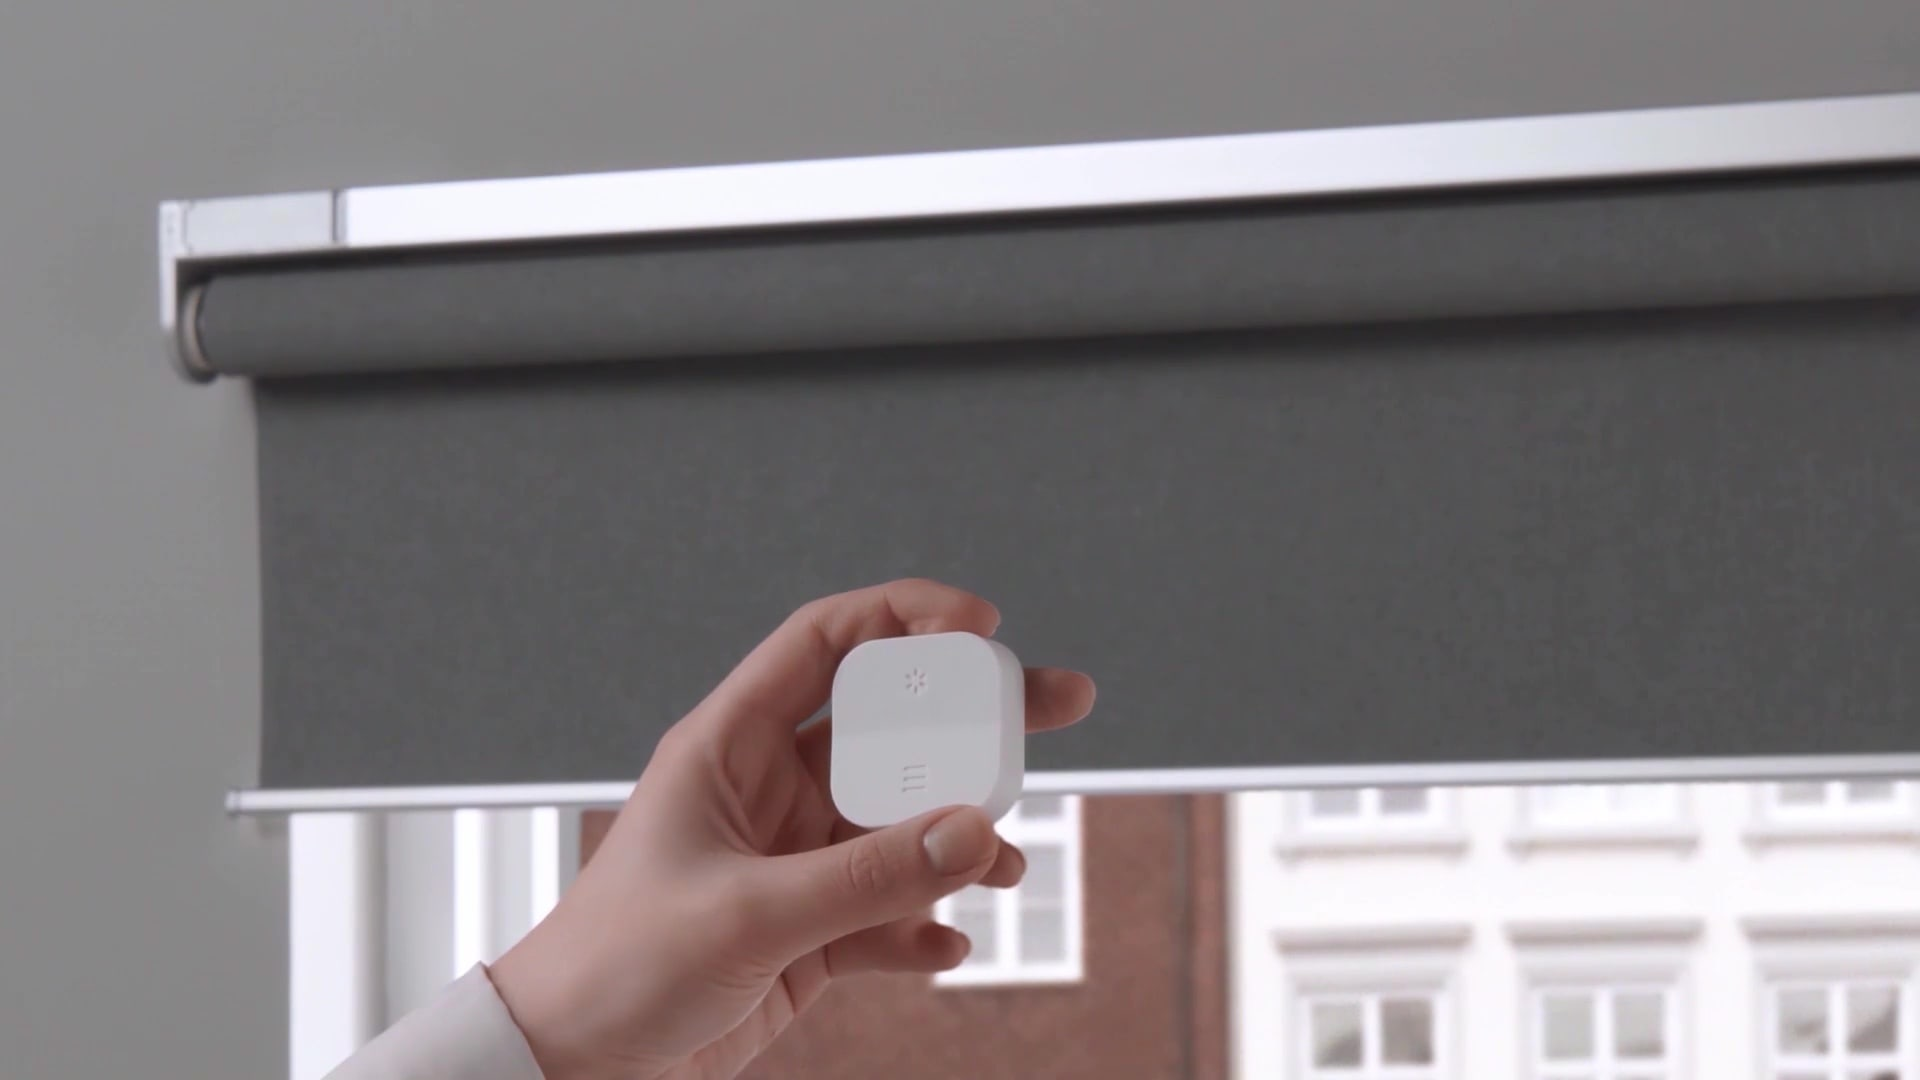 IKEA is launching low-cost smart window blinds